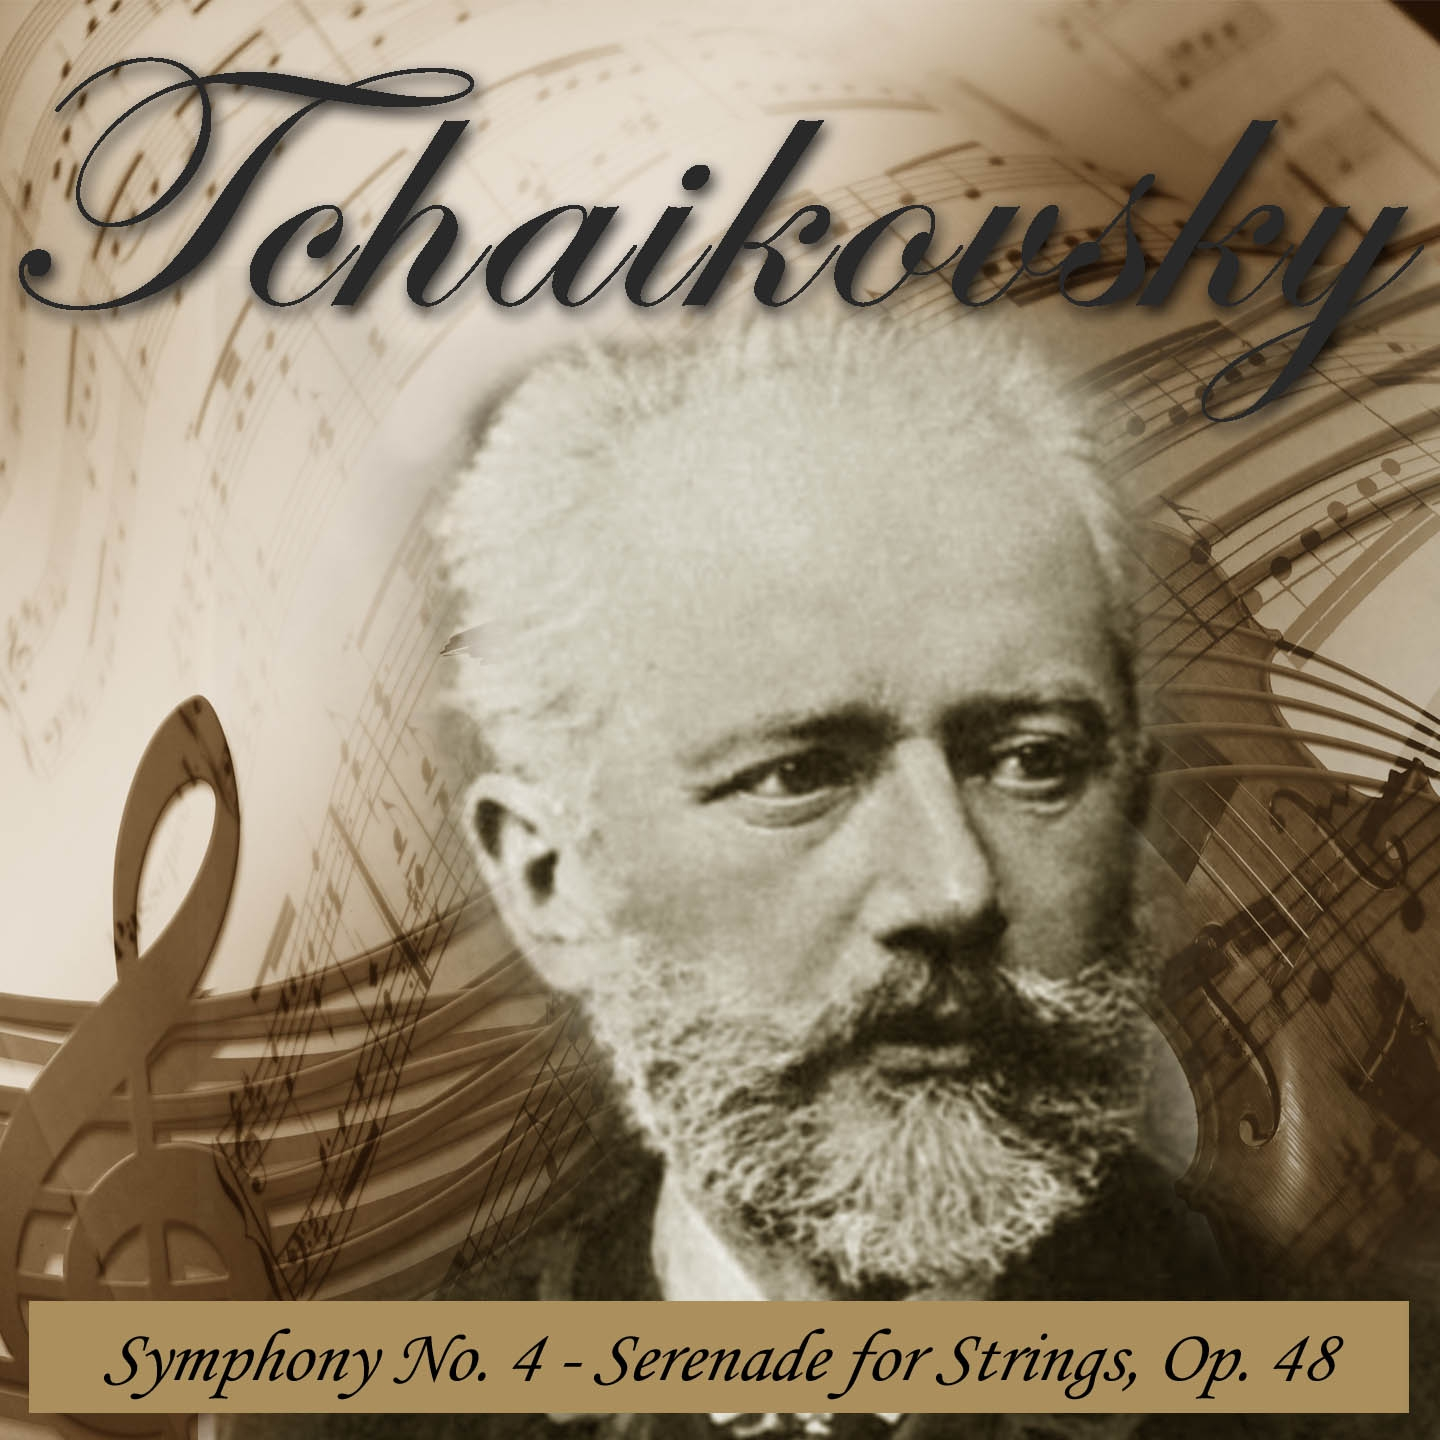 Tchaikovsky: Symphony No. 4 & Serenade for Strings, Op. 48